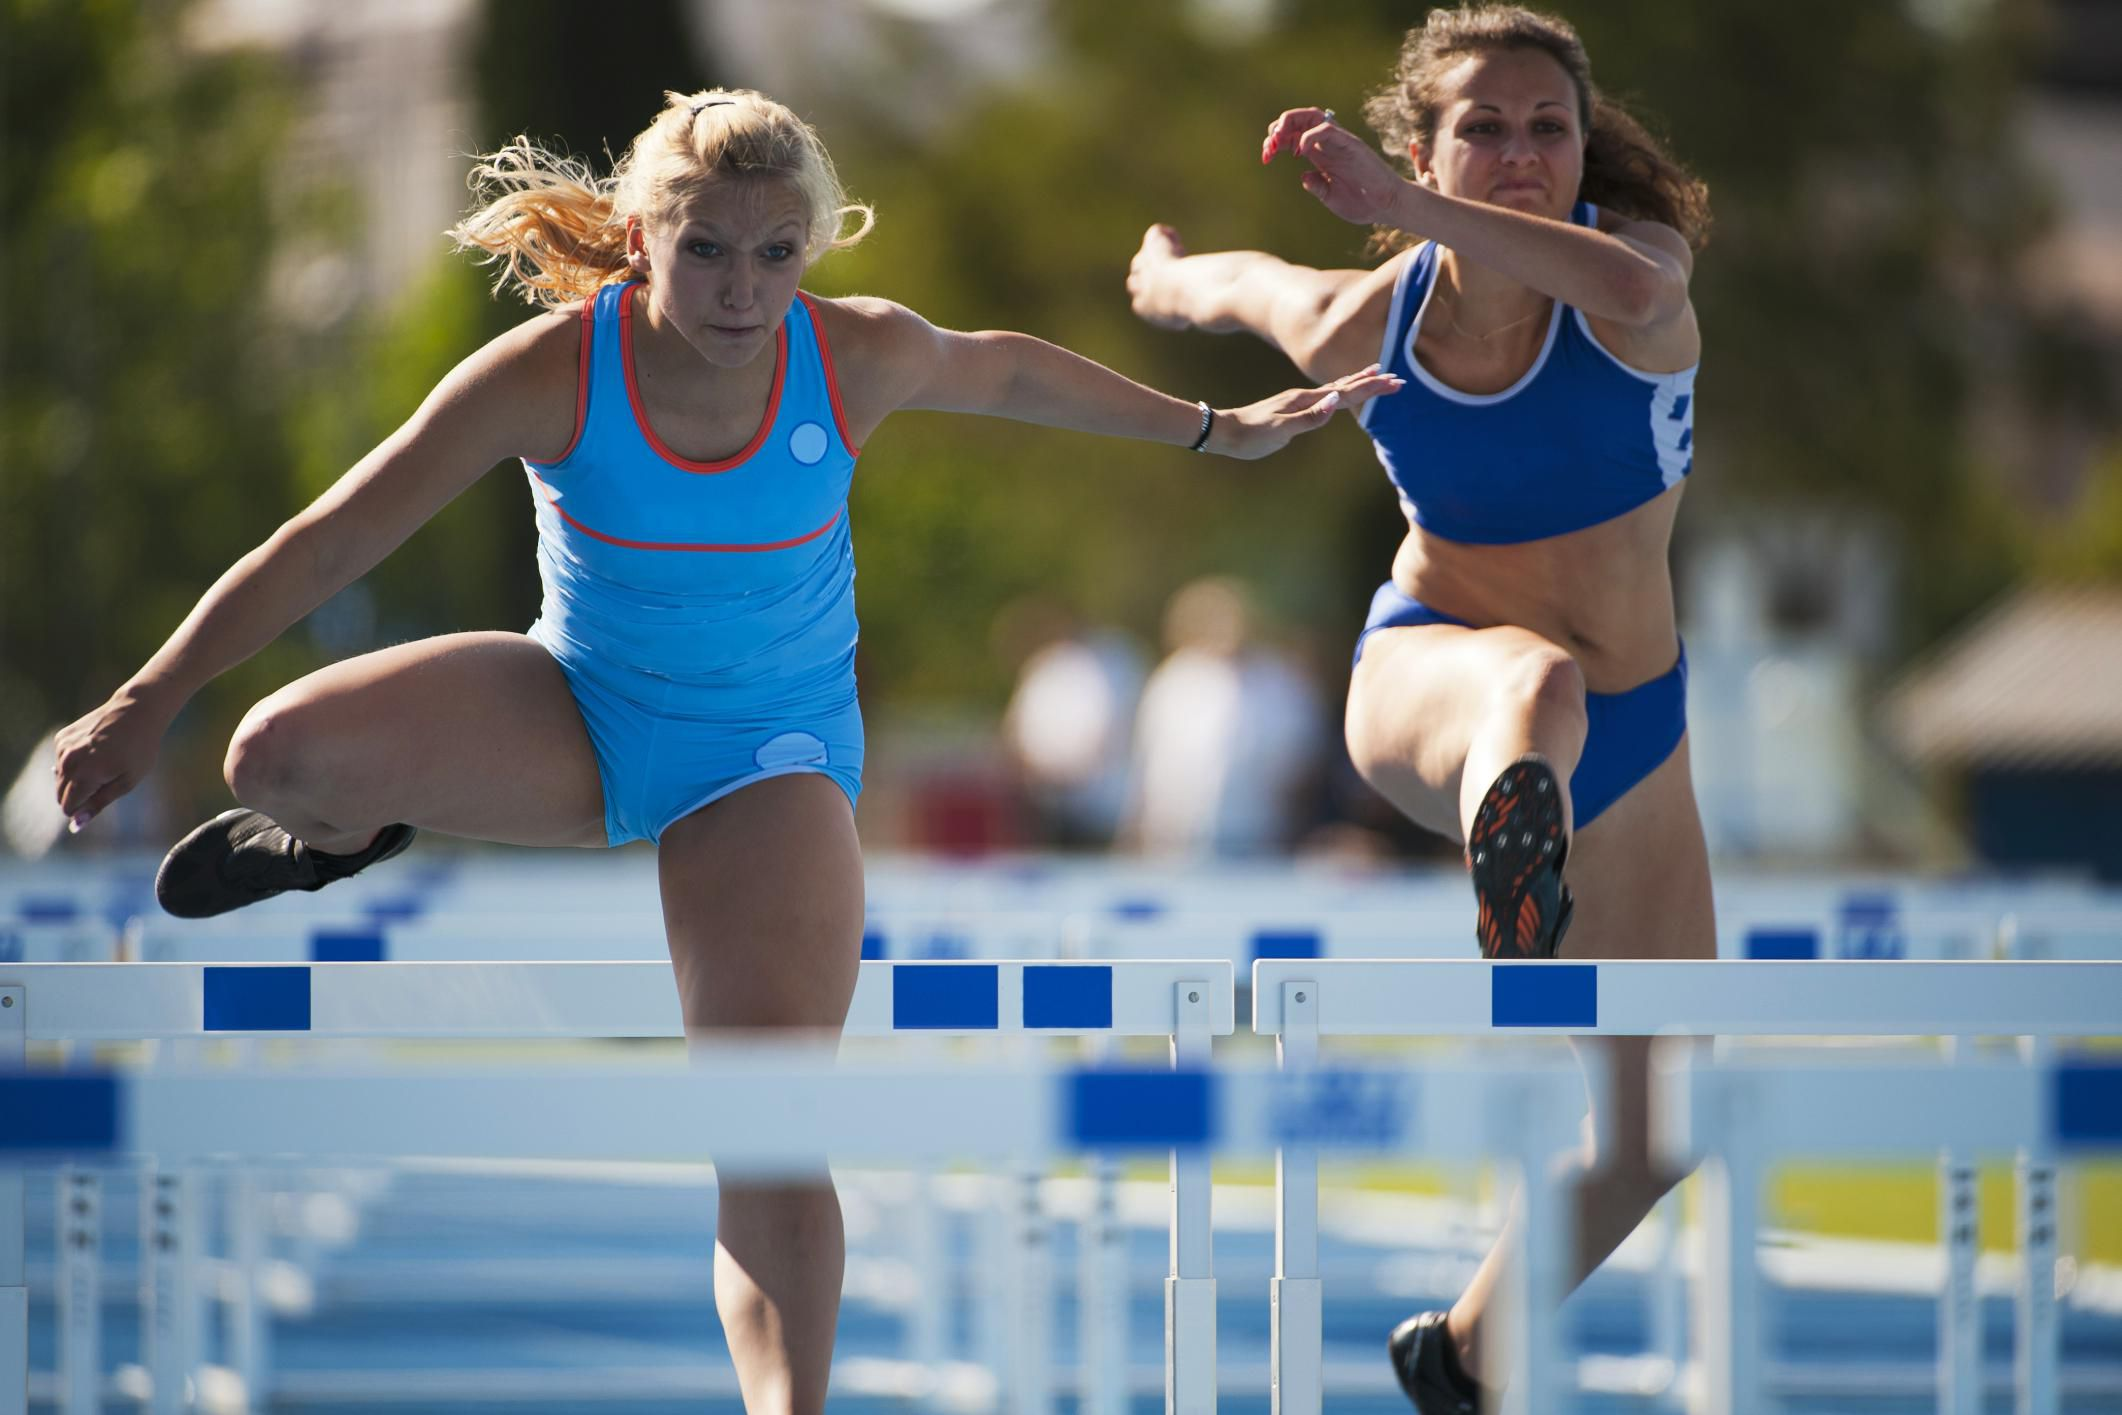 Learning Track And Field Hurdles For Beginners